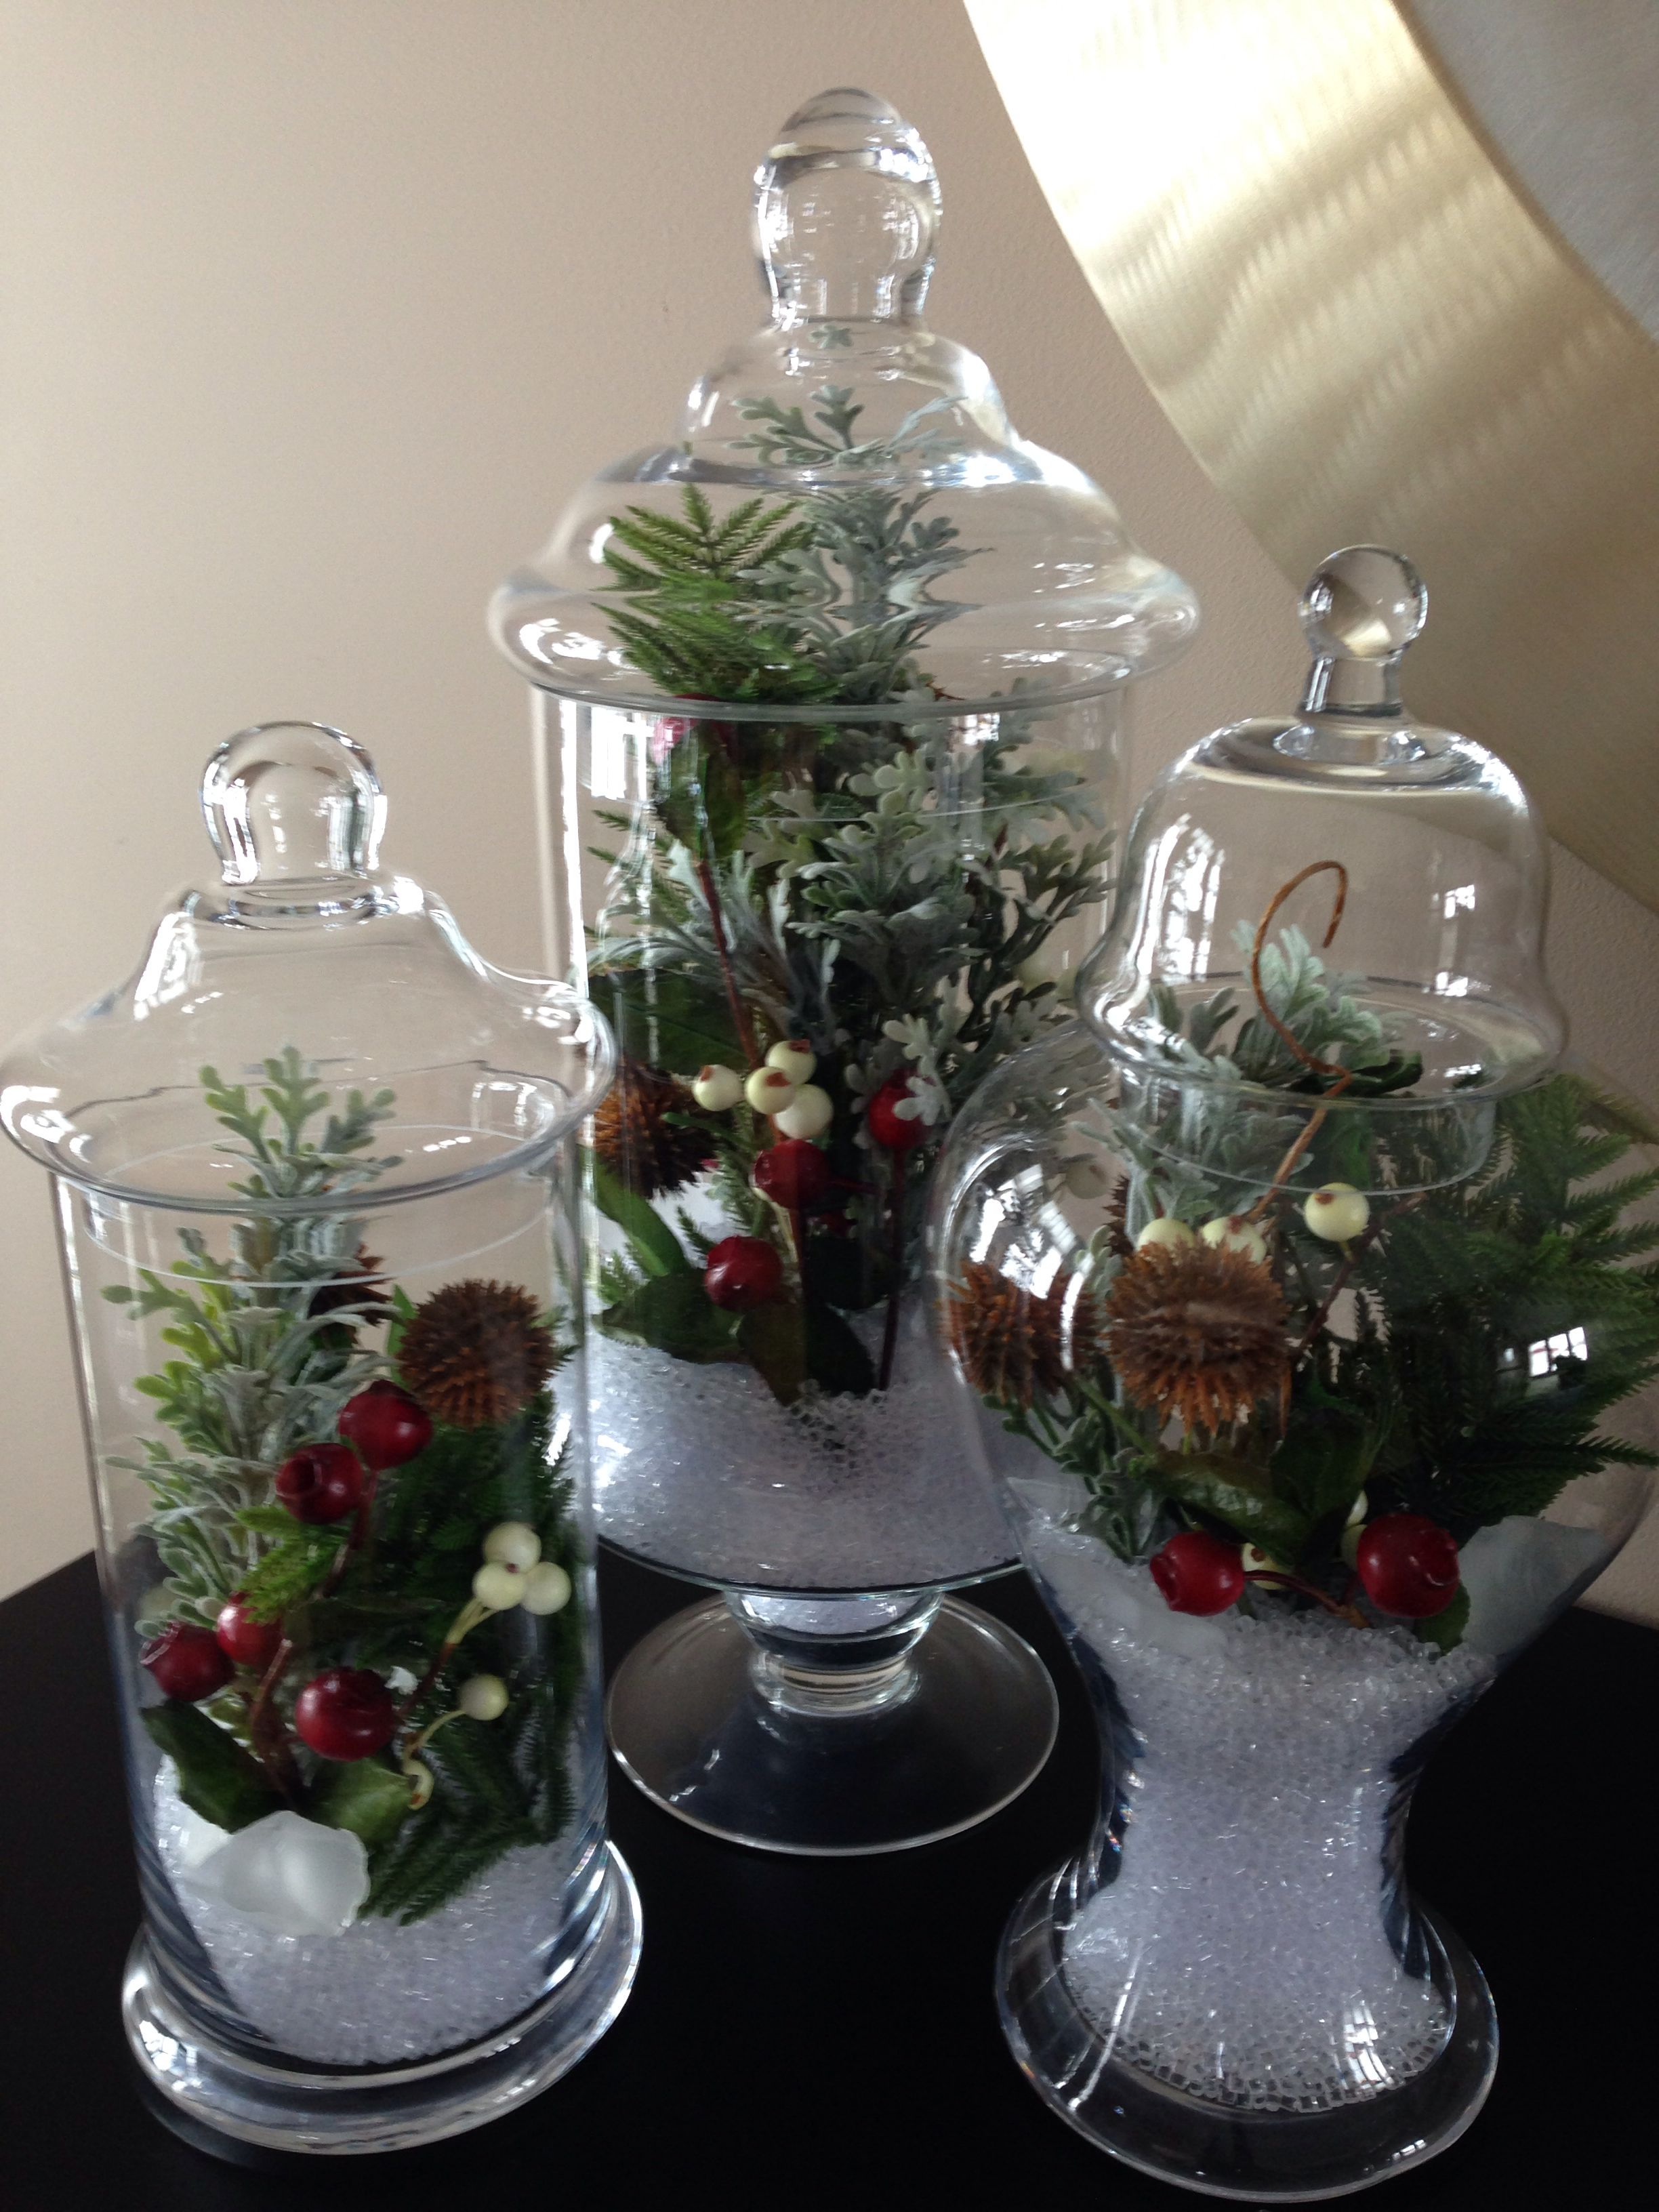 winter garden apothecary jars apothecary jar decor